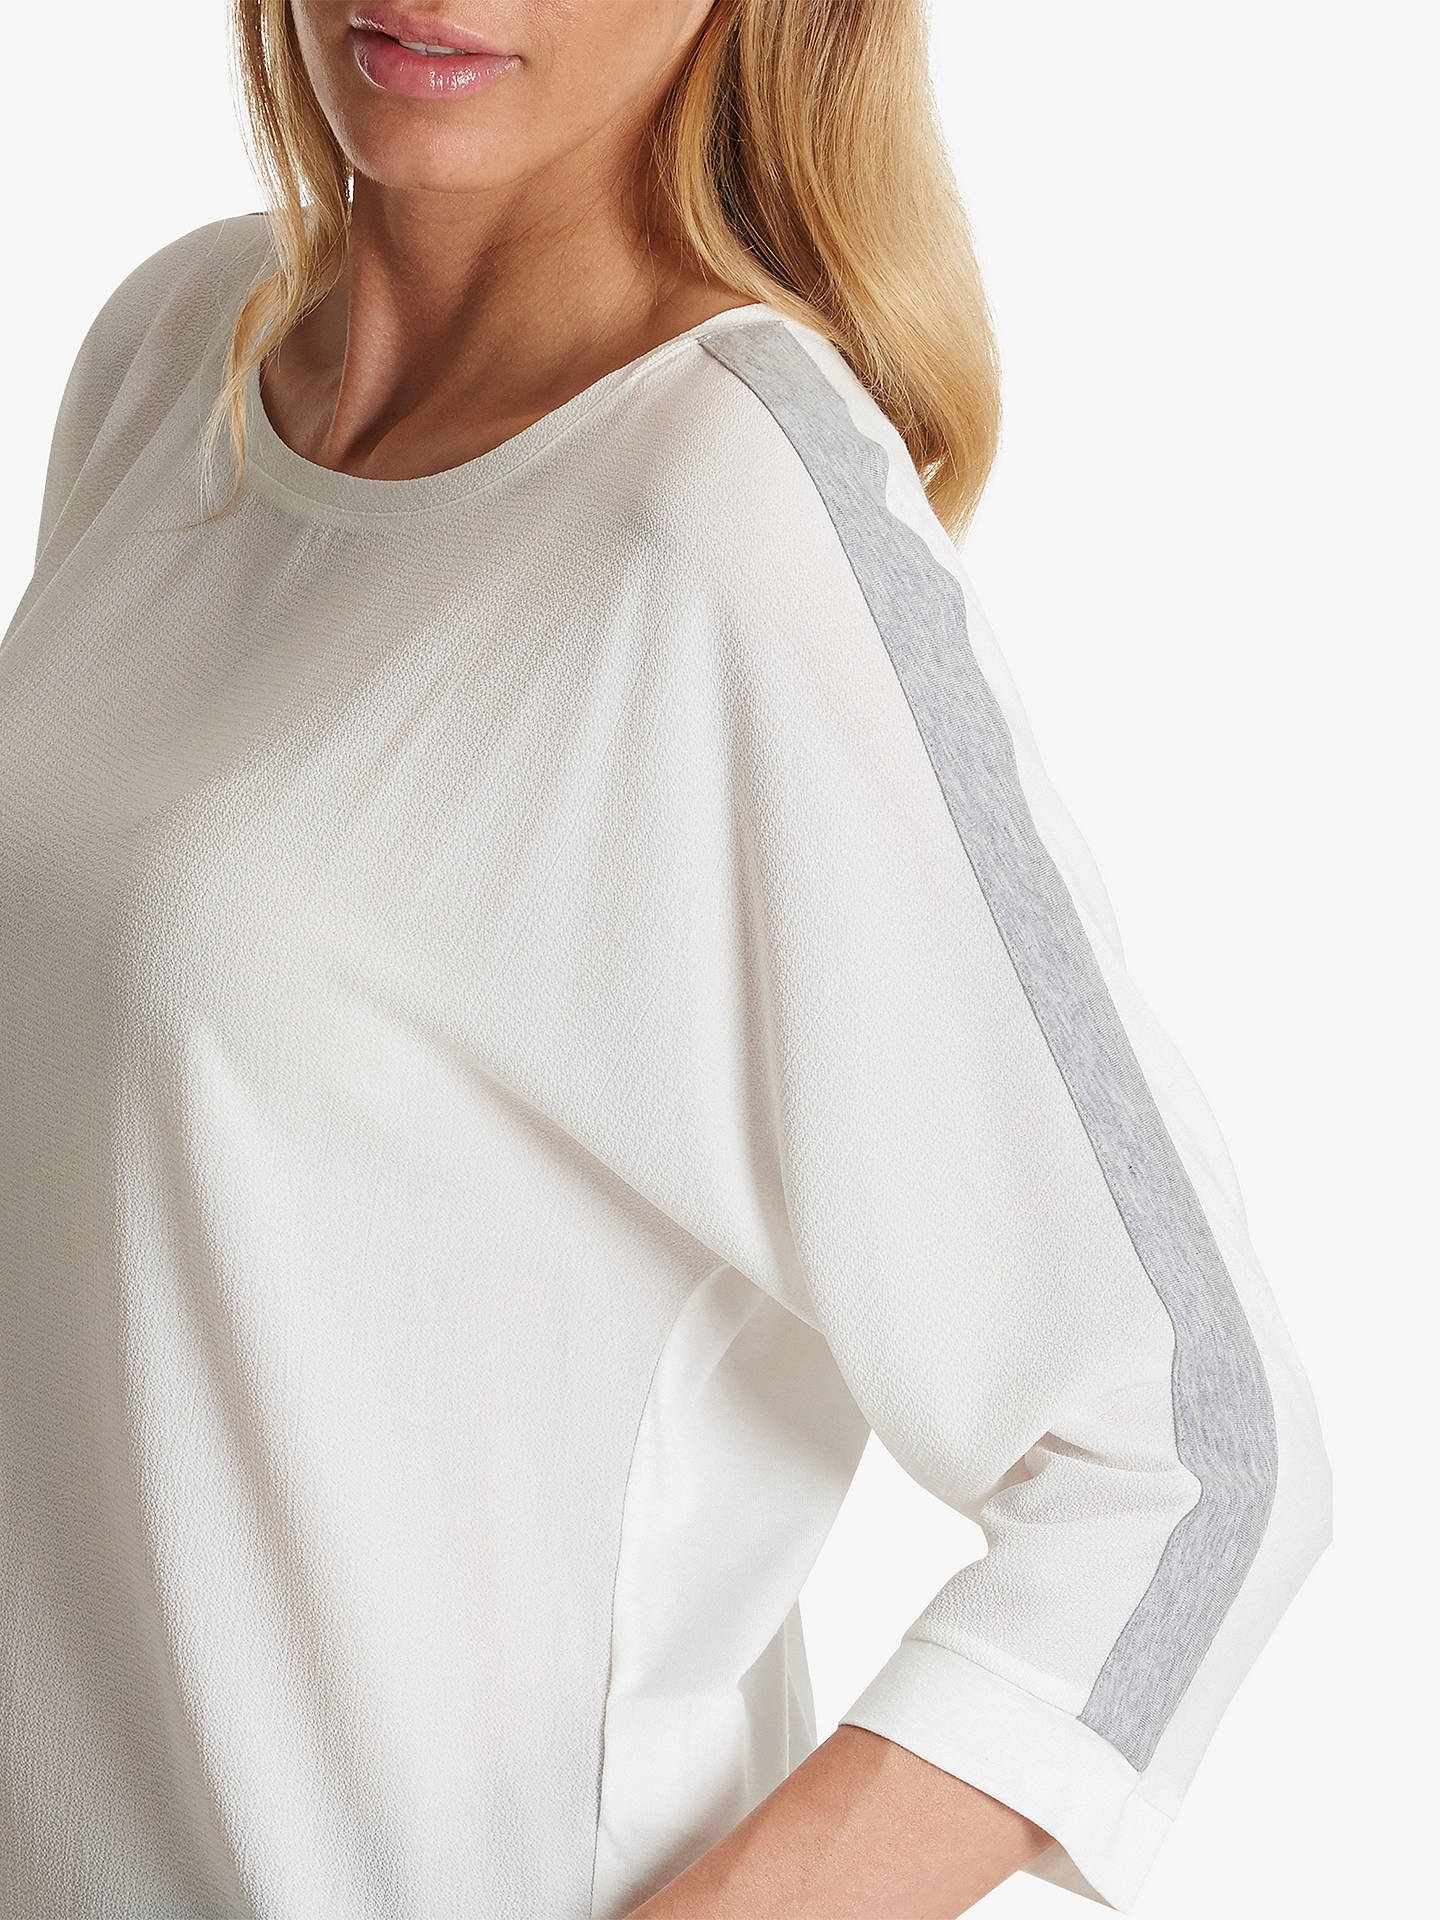 Buy Betty Barclay Crepe Jersey Top, White/Silver, 10 Online at johnlewis.com